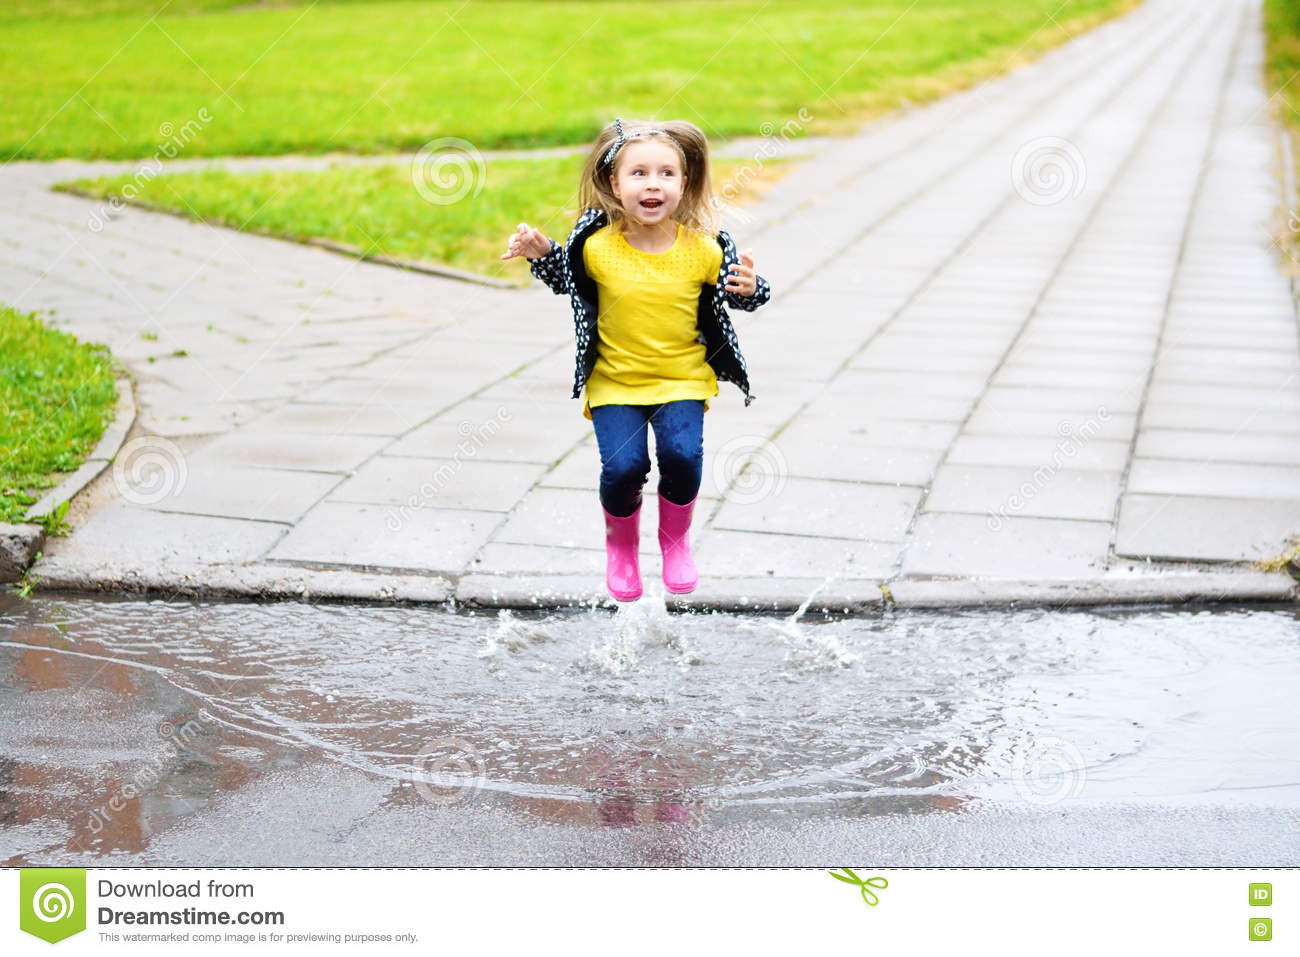 a personal belief of jumping into puddles A pair of red rubber boots are jumping into a big puddle feet in rubber boots rain puddle city close up little girls feet in red gumboots with daisies in them standing in green grass.